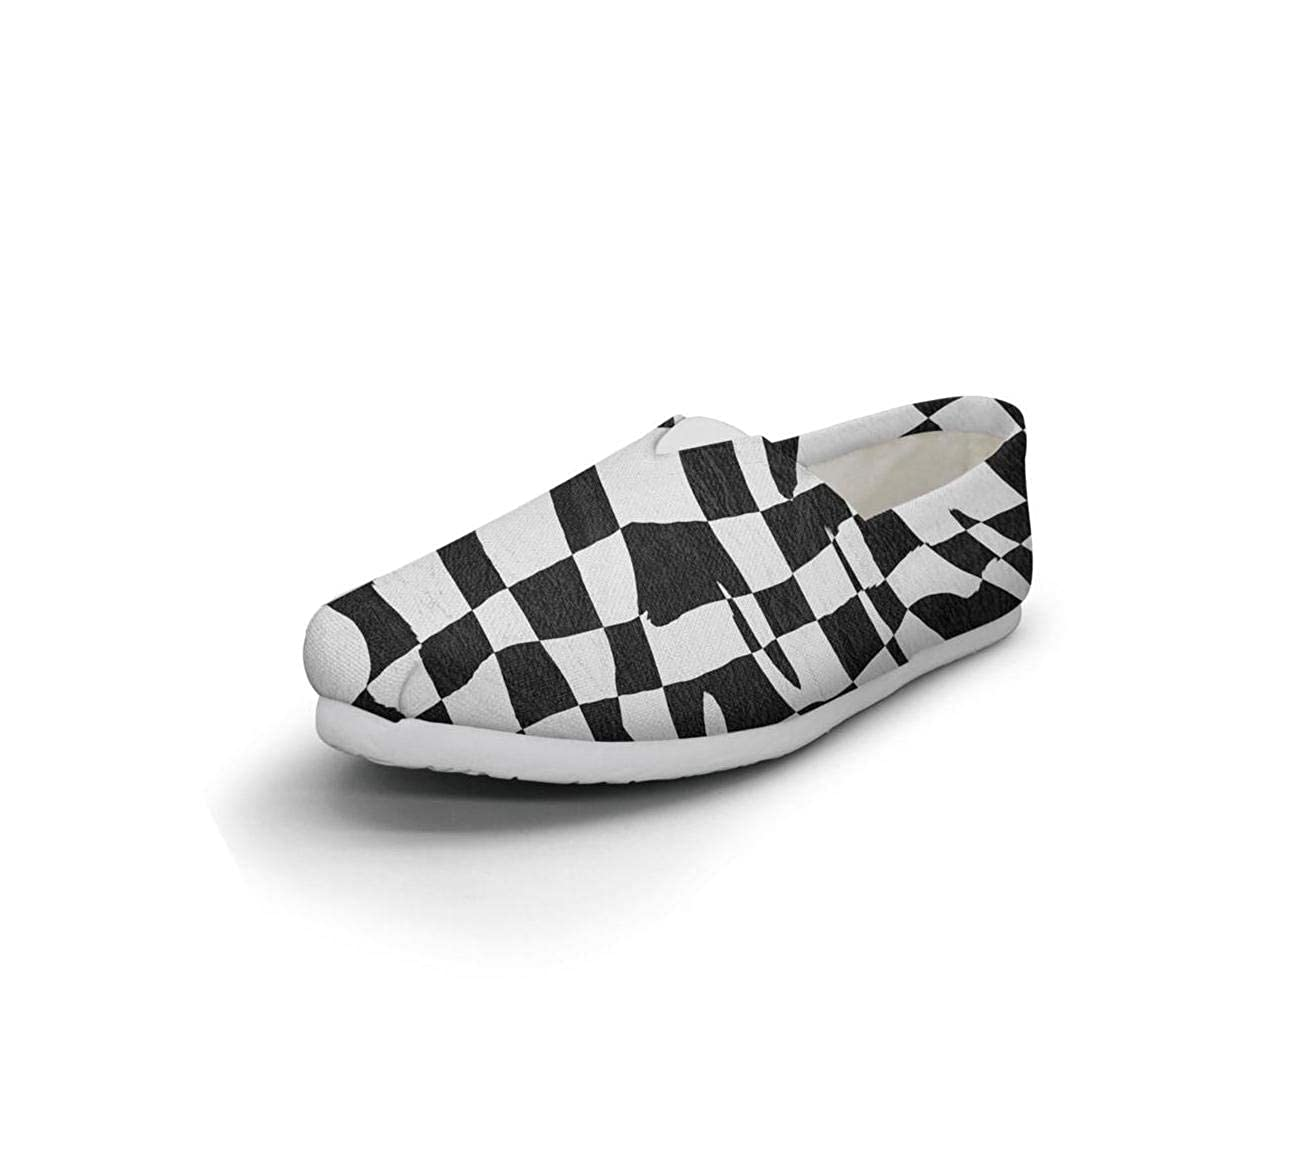 Art Palm Leaf Feather Checkerboard Women Lightweight Casual Canvas Fashion Sneakers Sports Shoes